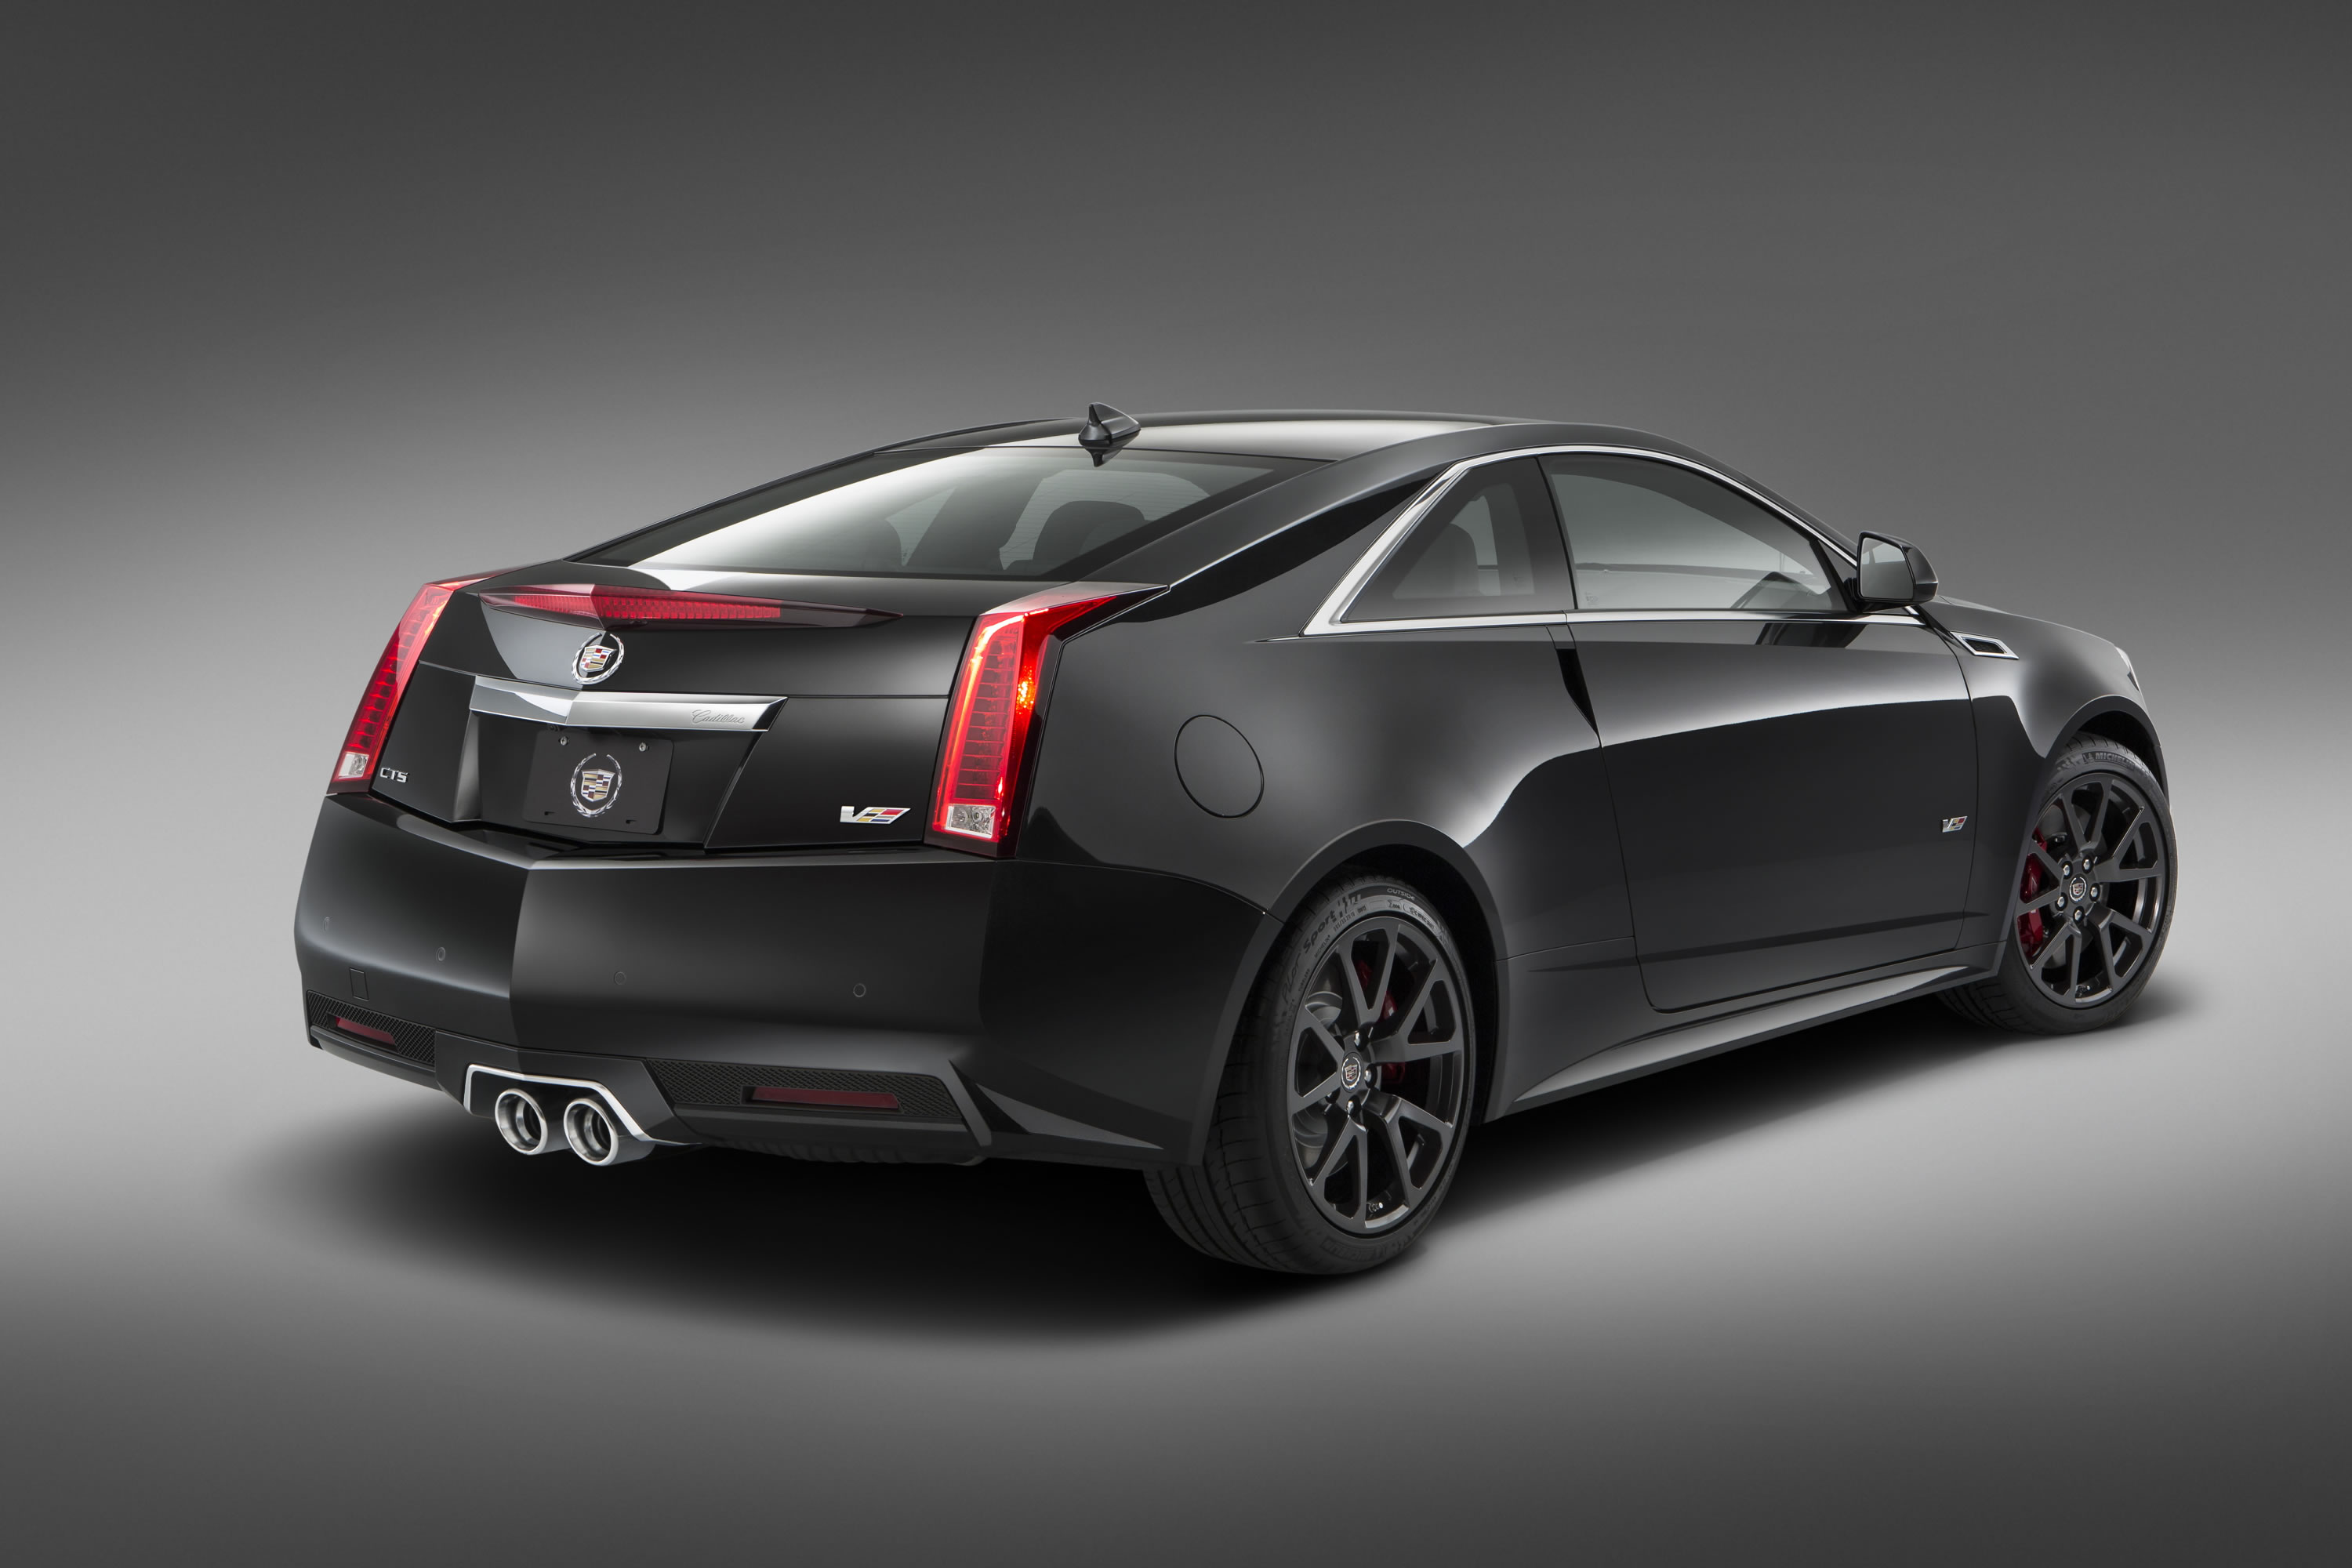 2015 cadillac cts v coupe special edition photos specs and review rs. Black Bedroom Furniture Sets. Home Design Ideas